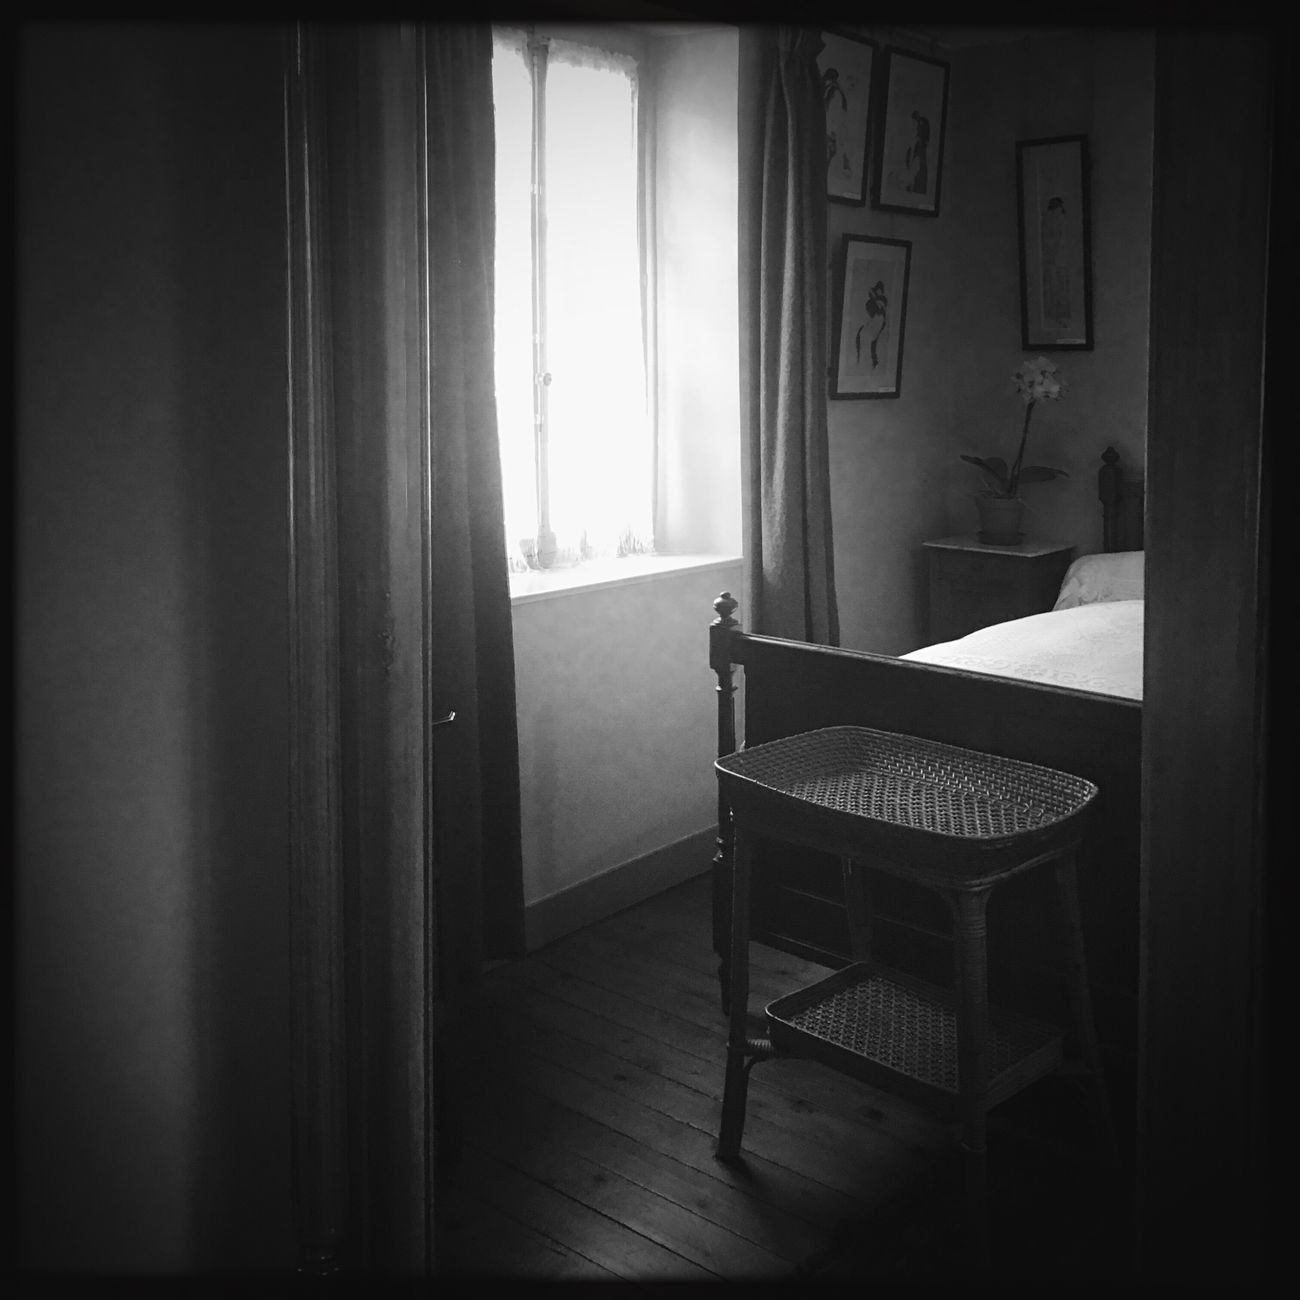 Monet House Blackandwhite Black & White Blackandwhite Photography Monochrome Hipstamatic Country House France Window Monet Giverny, France. EyeEm Best Shots